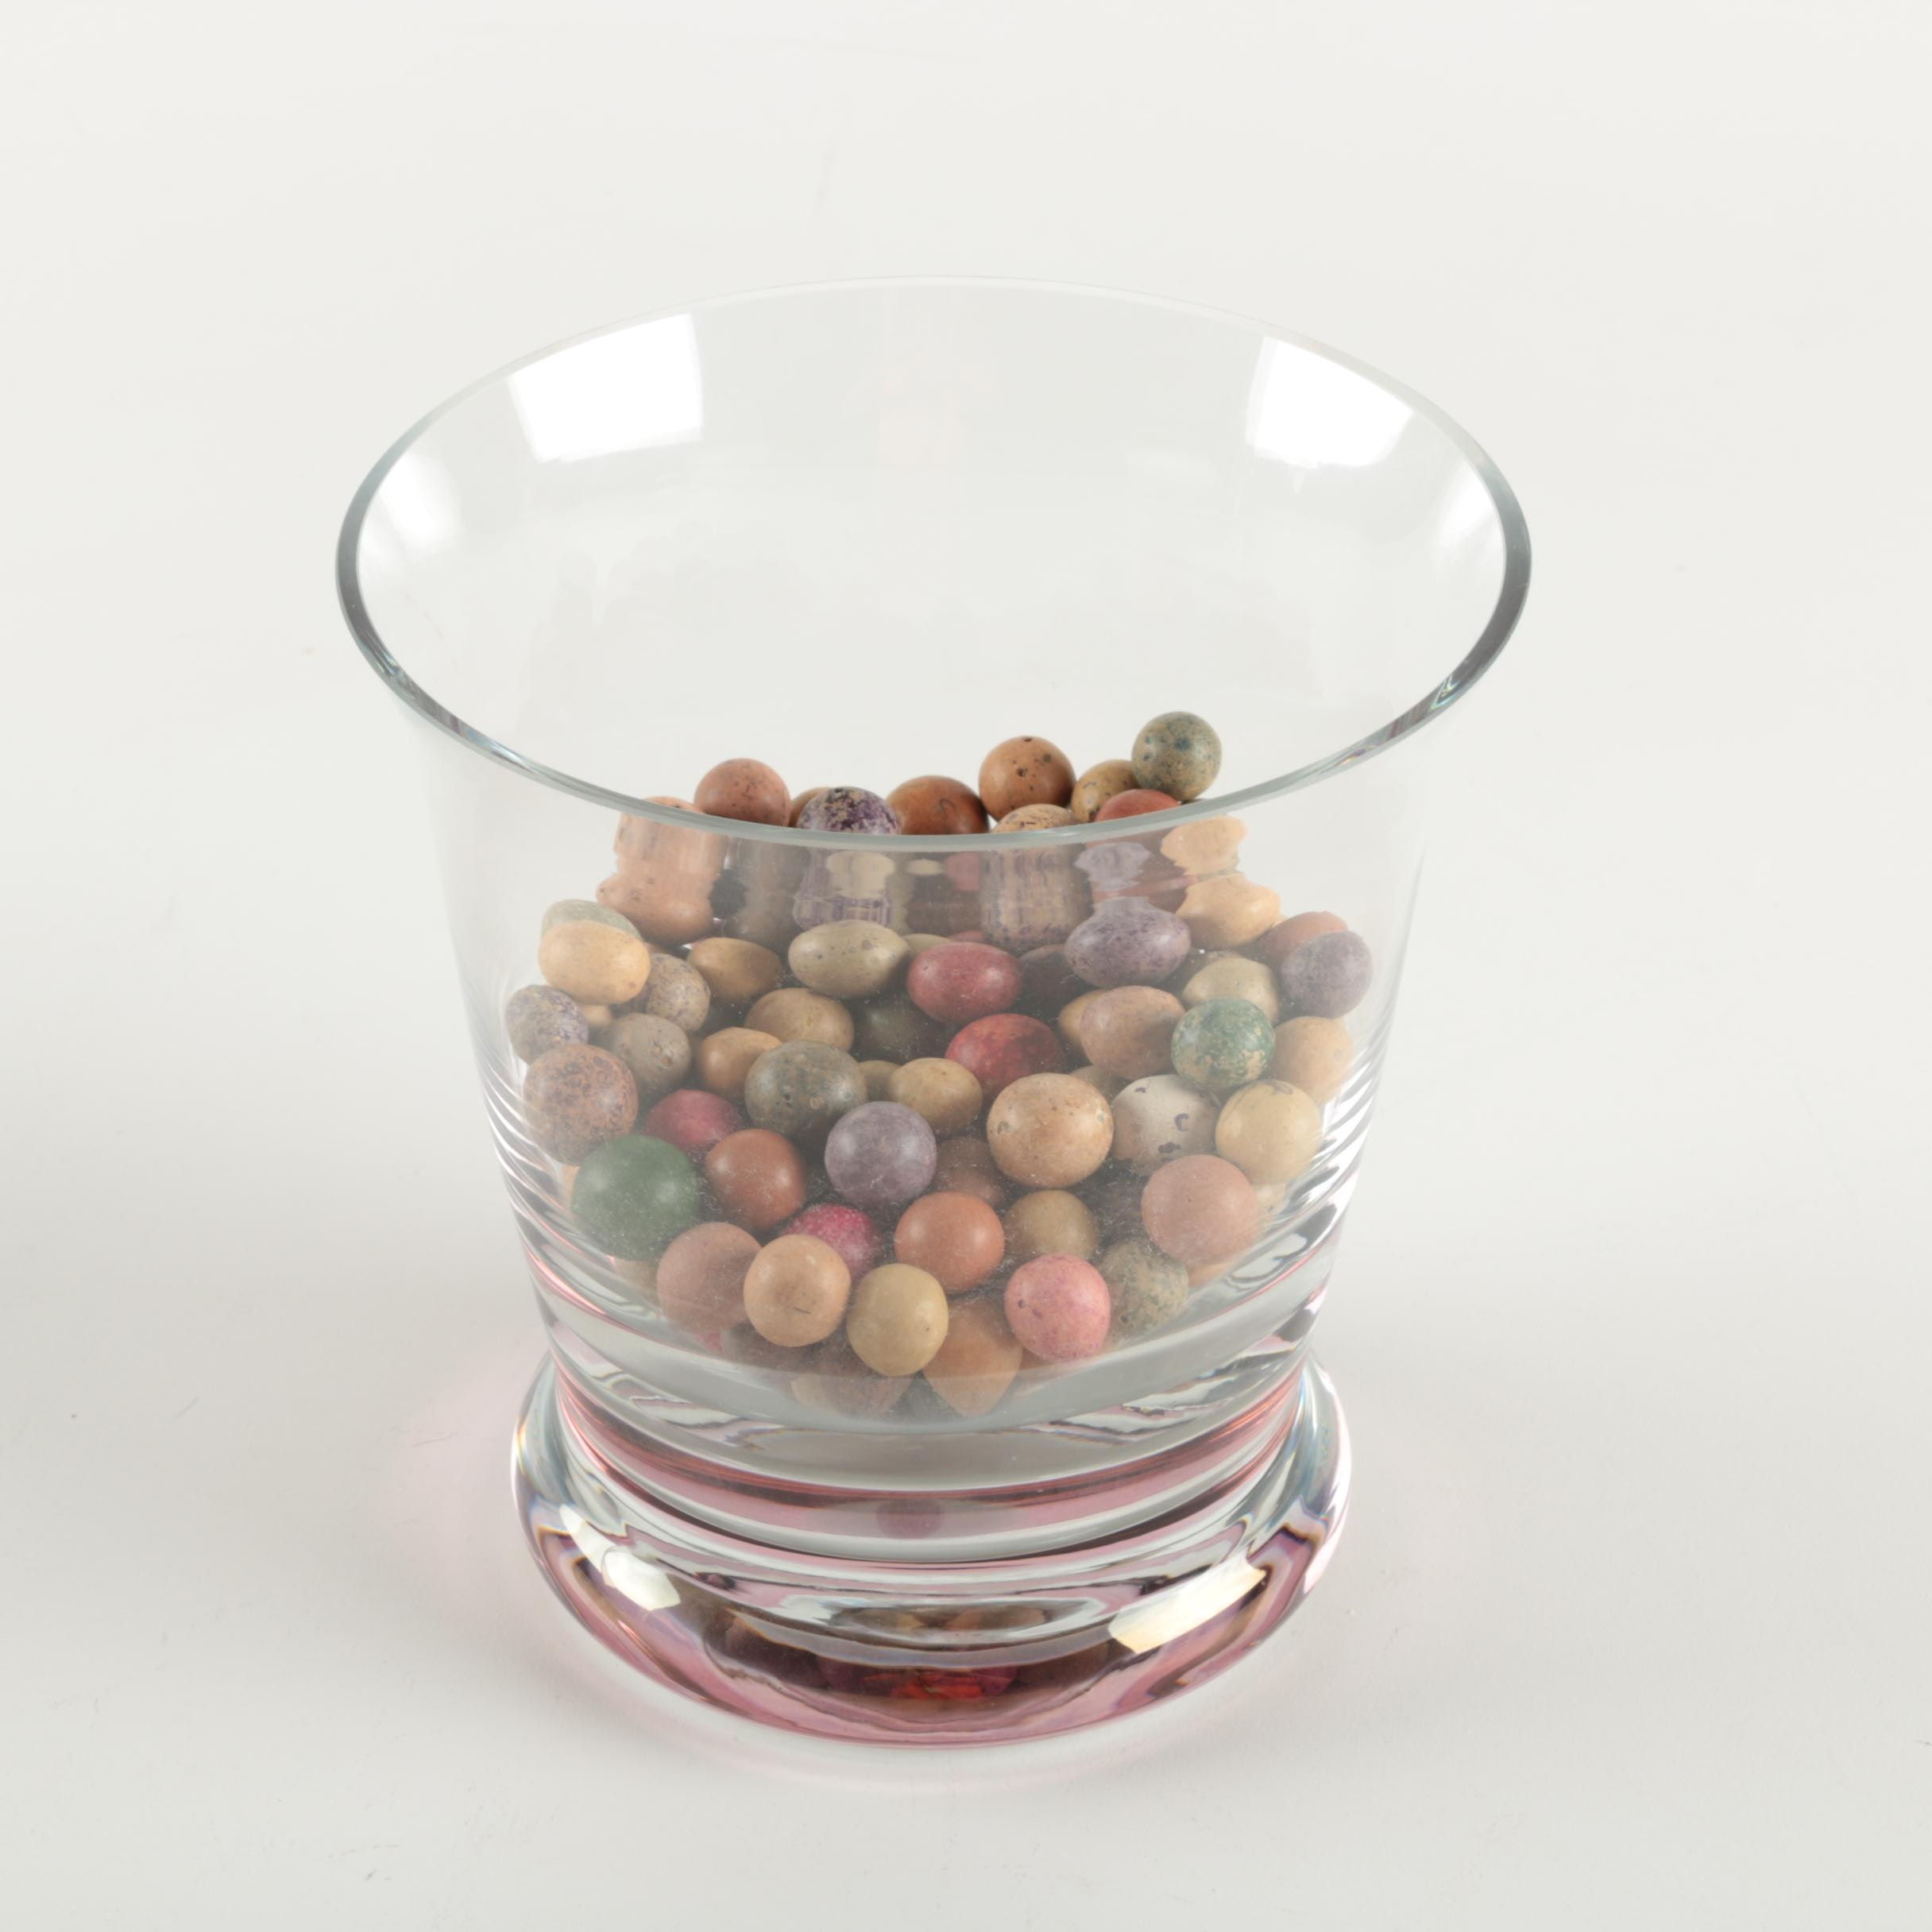 Clay Marbles In Glass Bowl